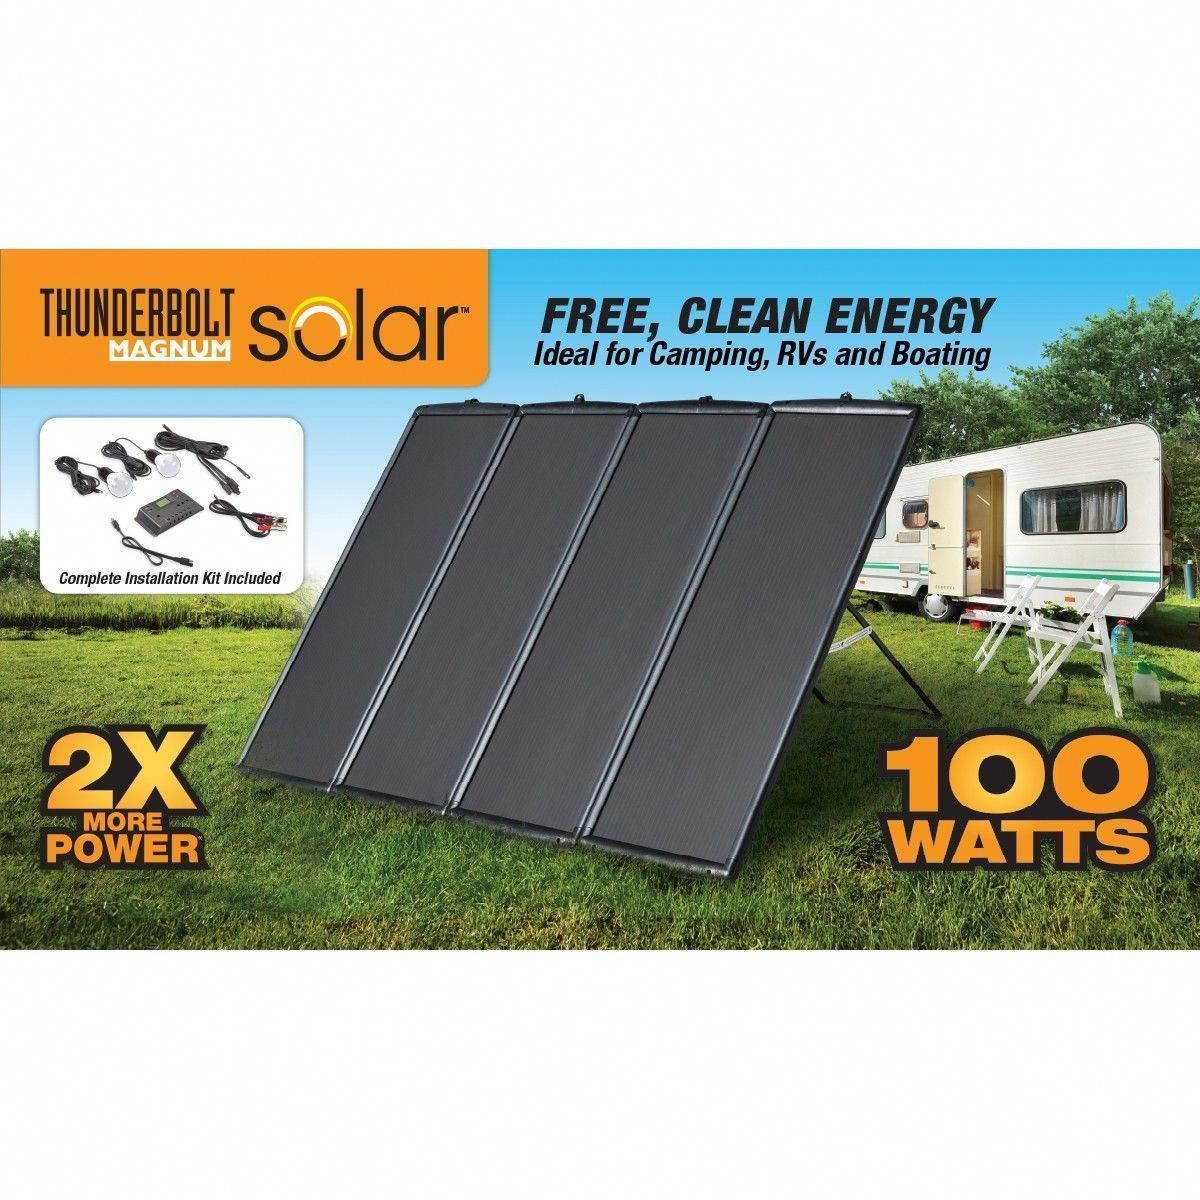 100 Watt Solar Panel Kit Solarpanels Solarenergy Solarpower Solargenerator Solarpanelkits Solarwaterheater In 2020 Best Solar Panels Solar Heating Solar Energy System